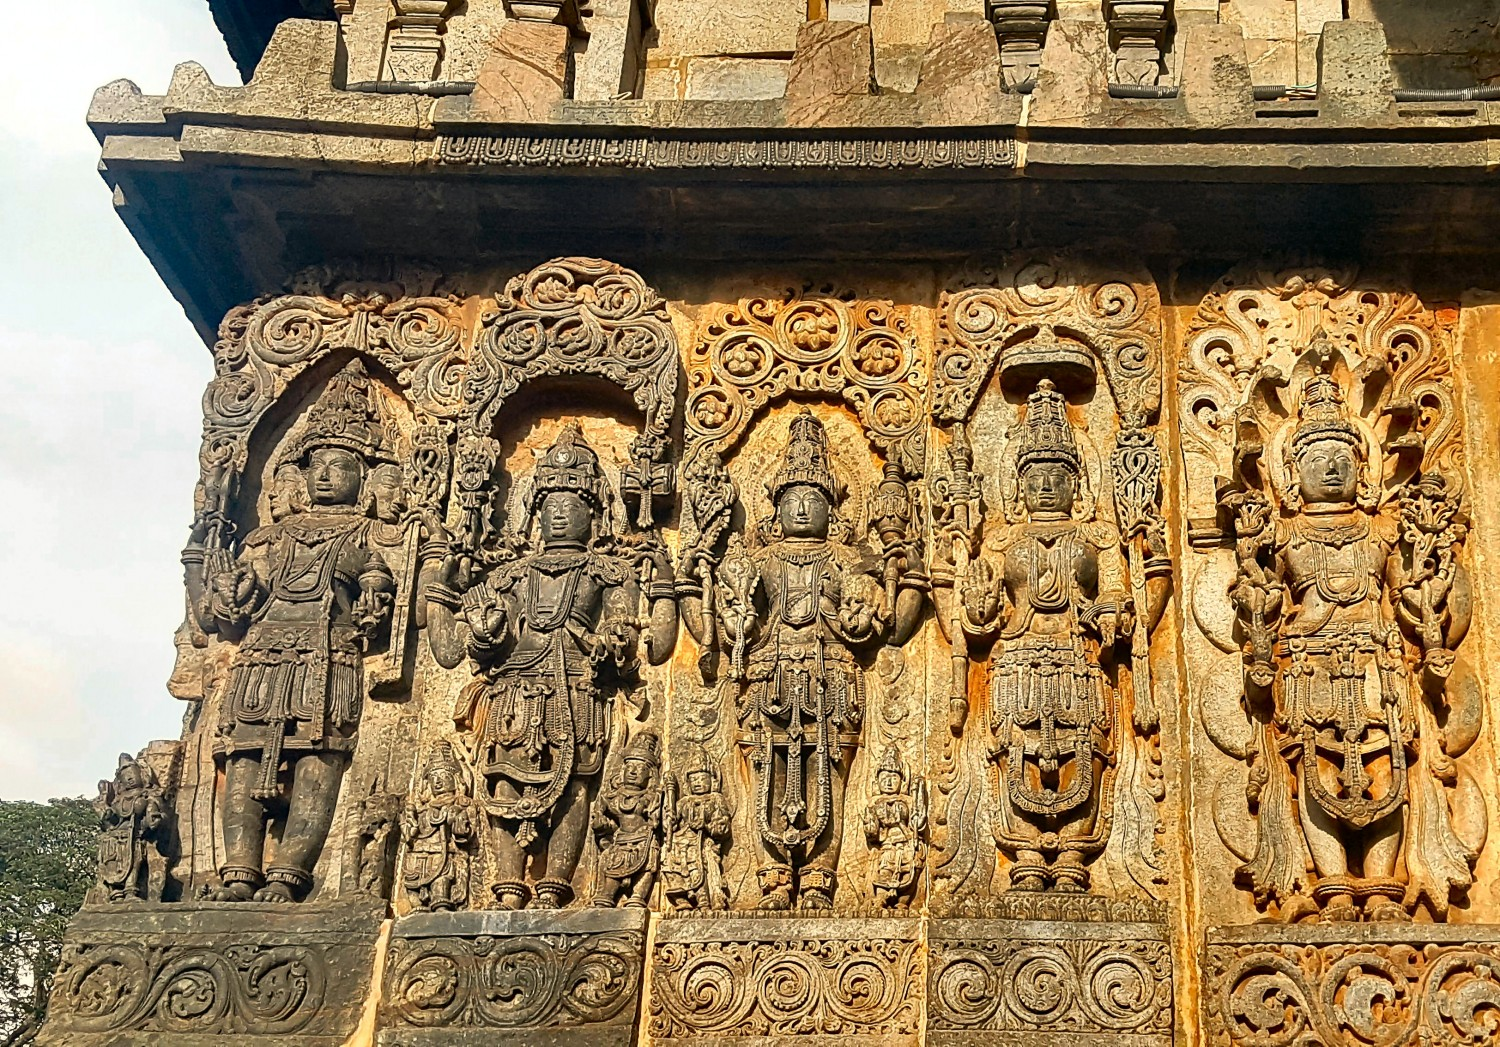 Belur and Halebidu stone temples, Karnataka, India